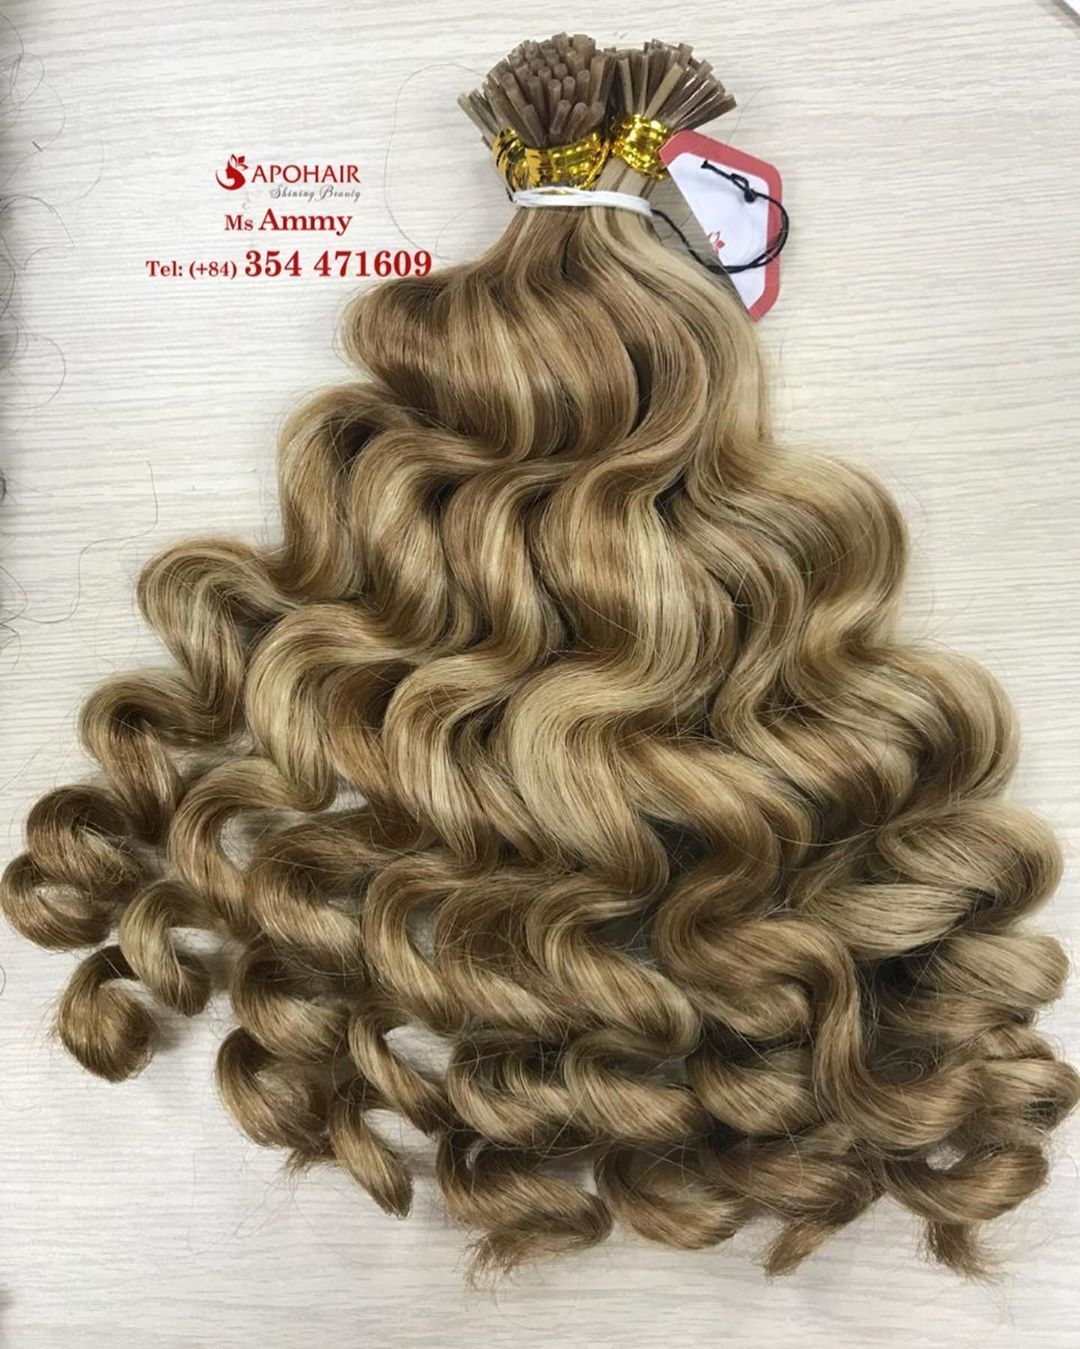 I Tip Hair Extension Best Service To Support 24 24 Whatsapp Tel Viber 84354471609 Ammy Ap Hair Extensions Best I Tip Hair Extensions Human Hair Color